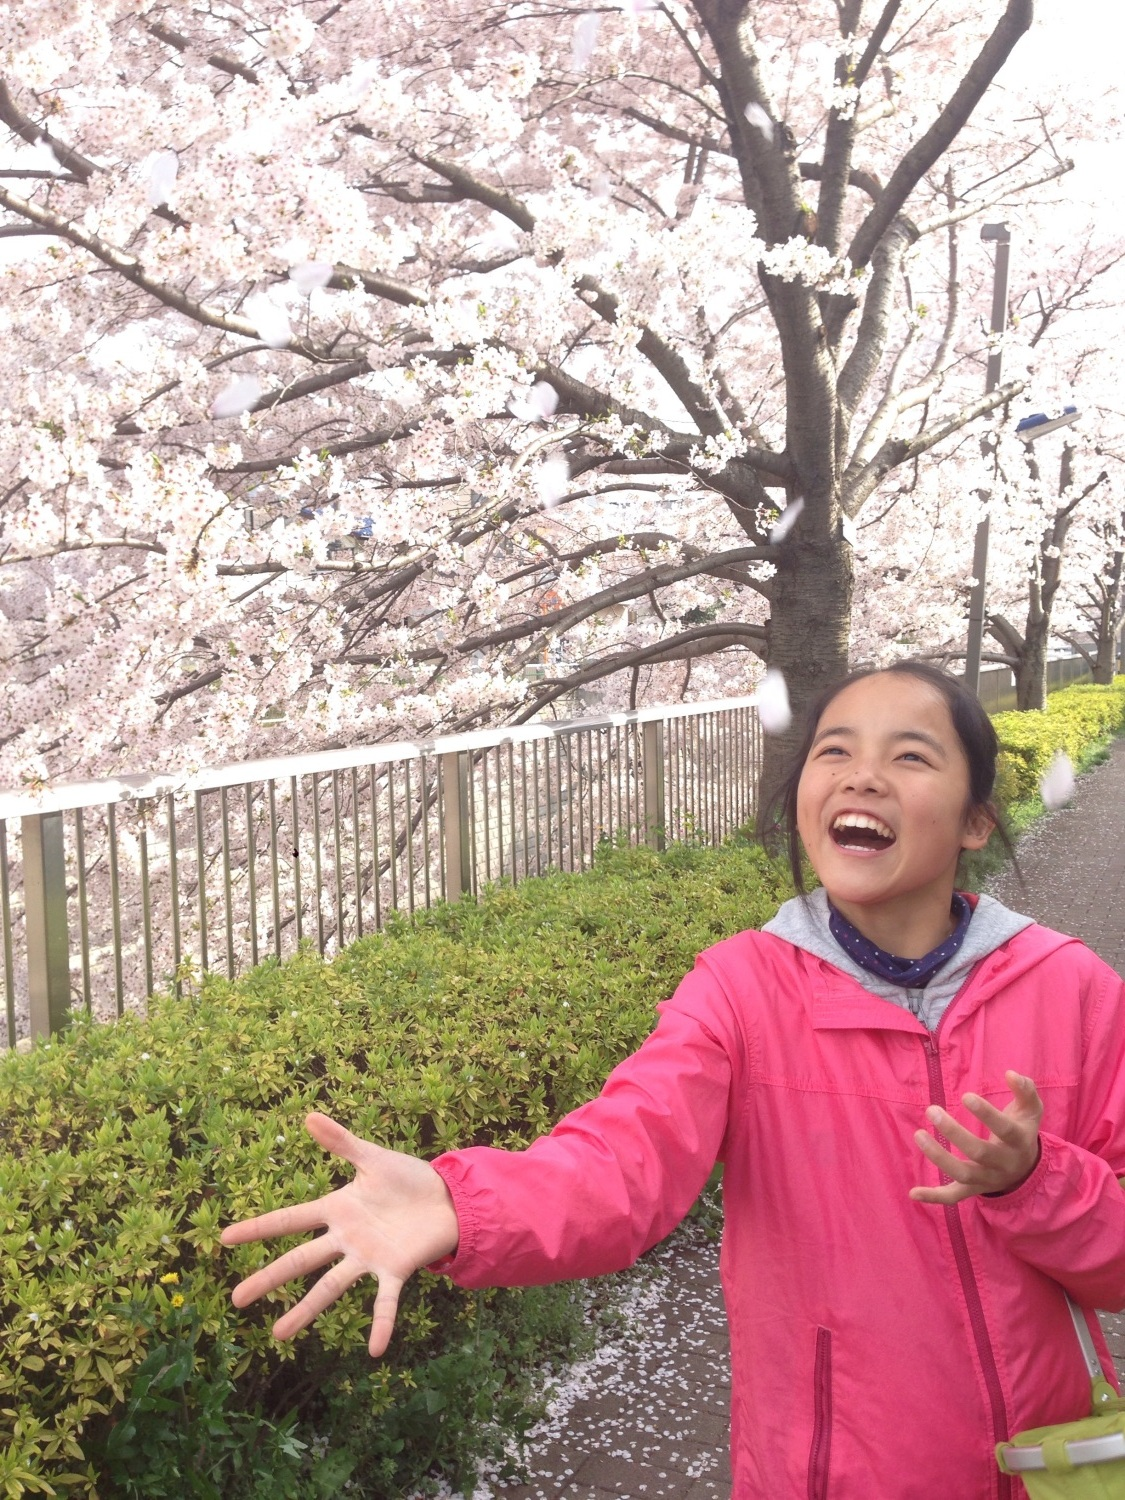 Smile that cherry blossoms bloom blooms